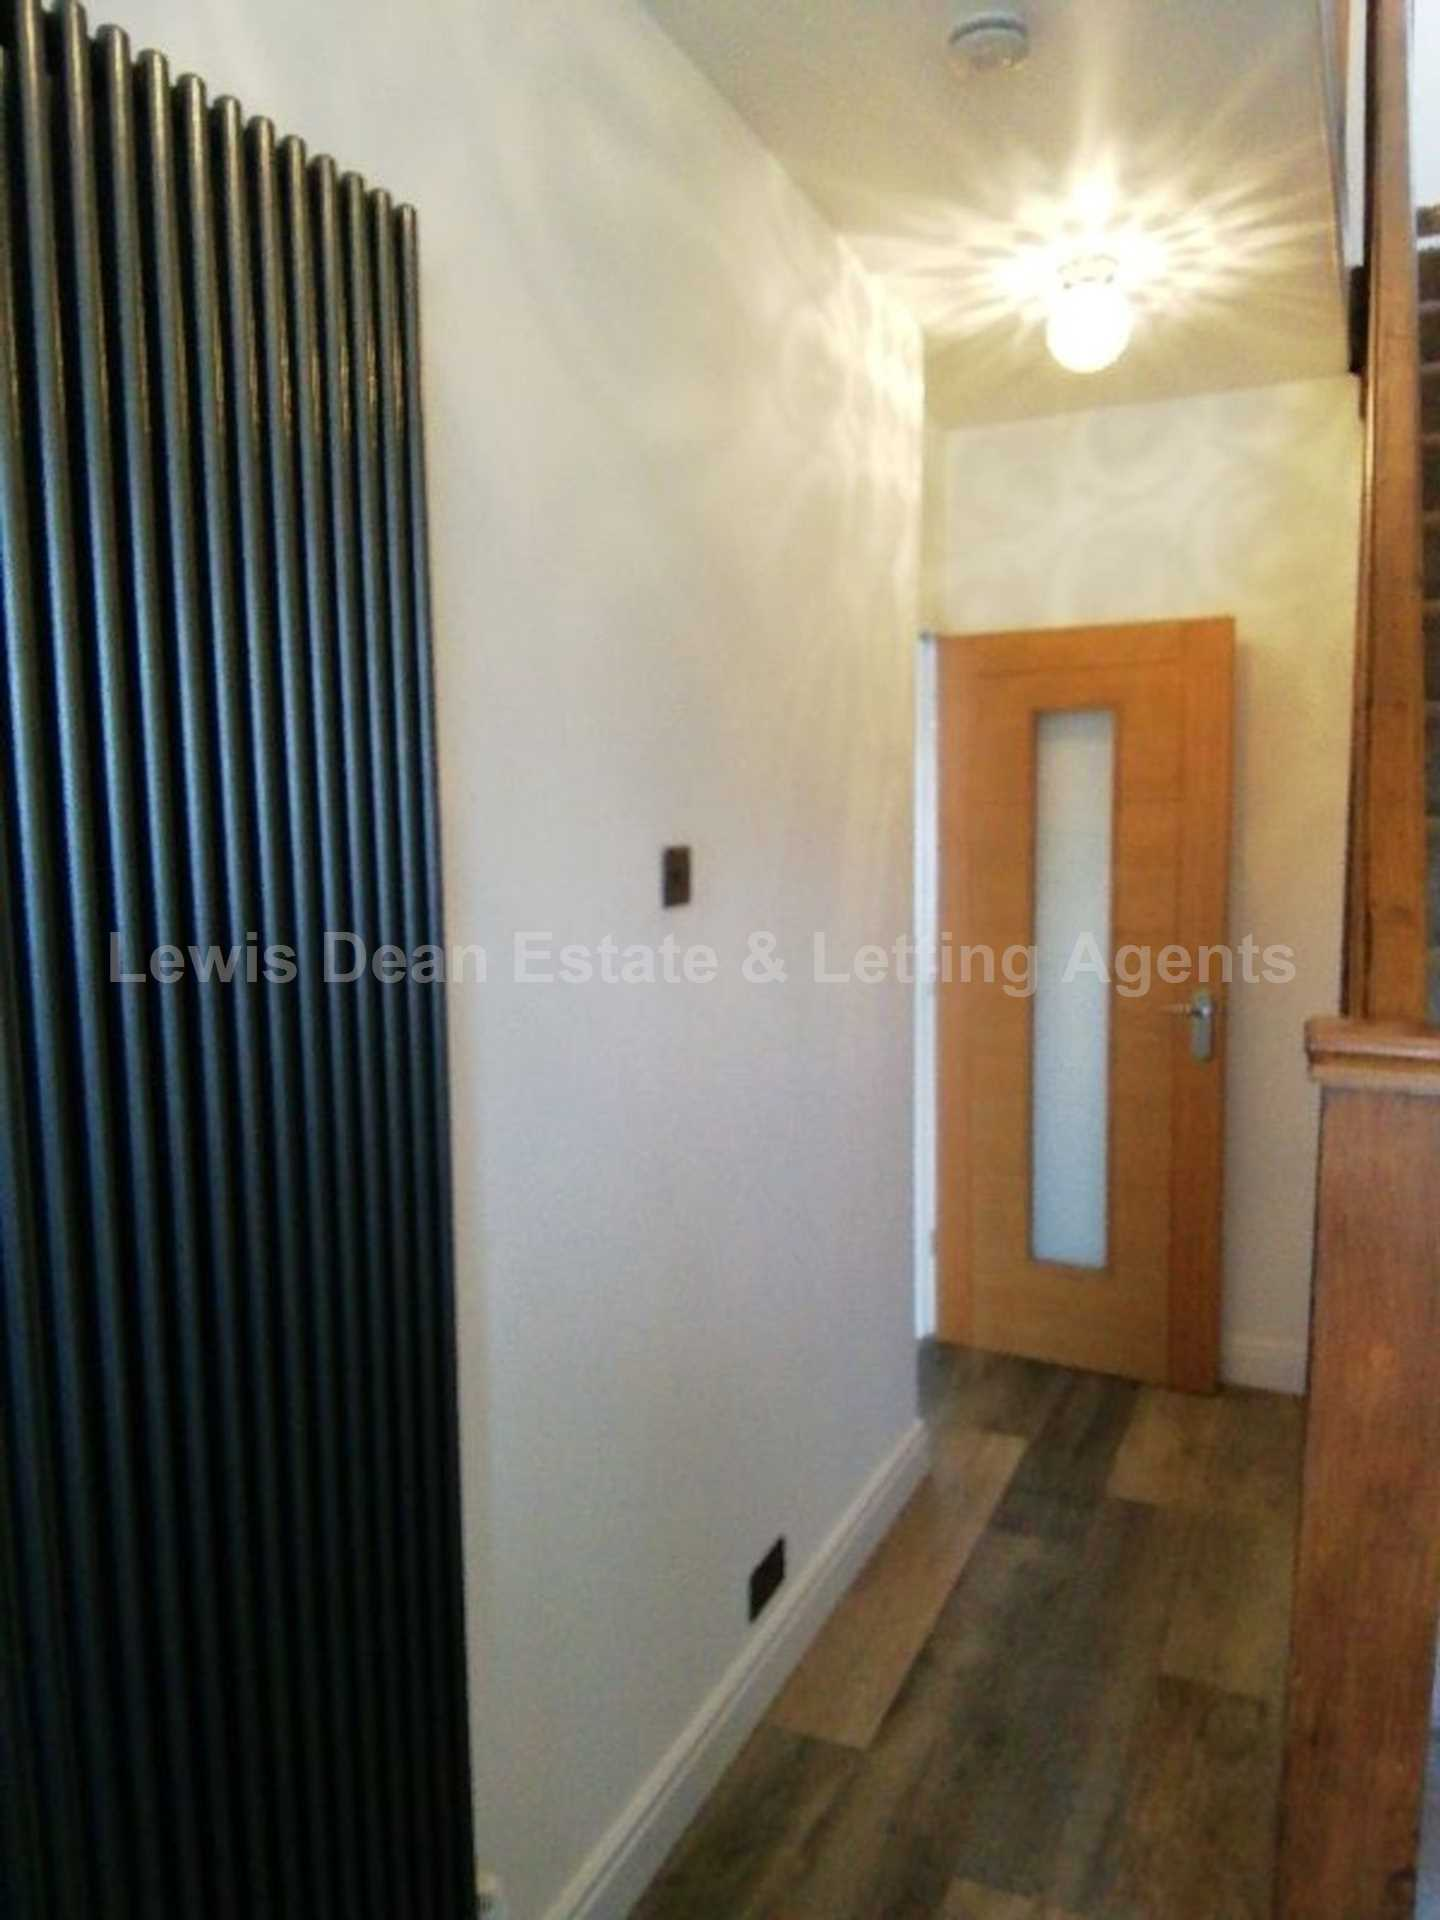 3 Bedroom Family home with Workshop/Home Office, Image 15